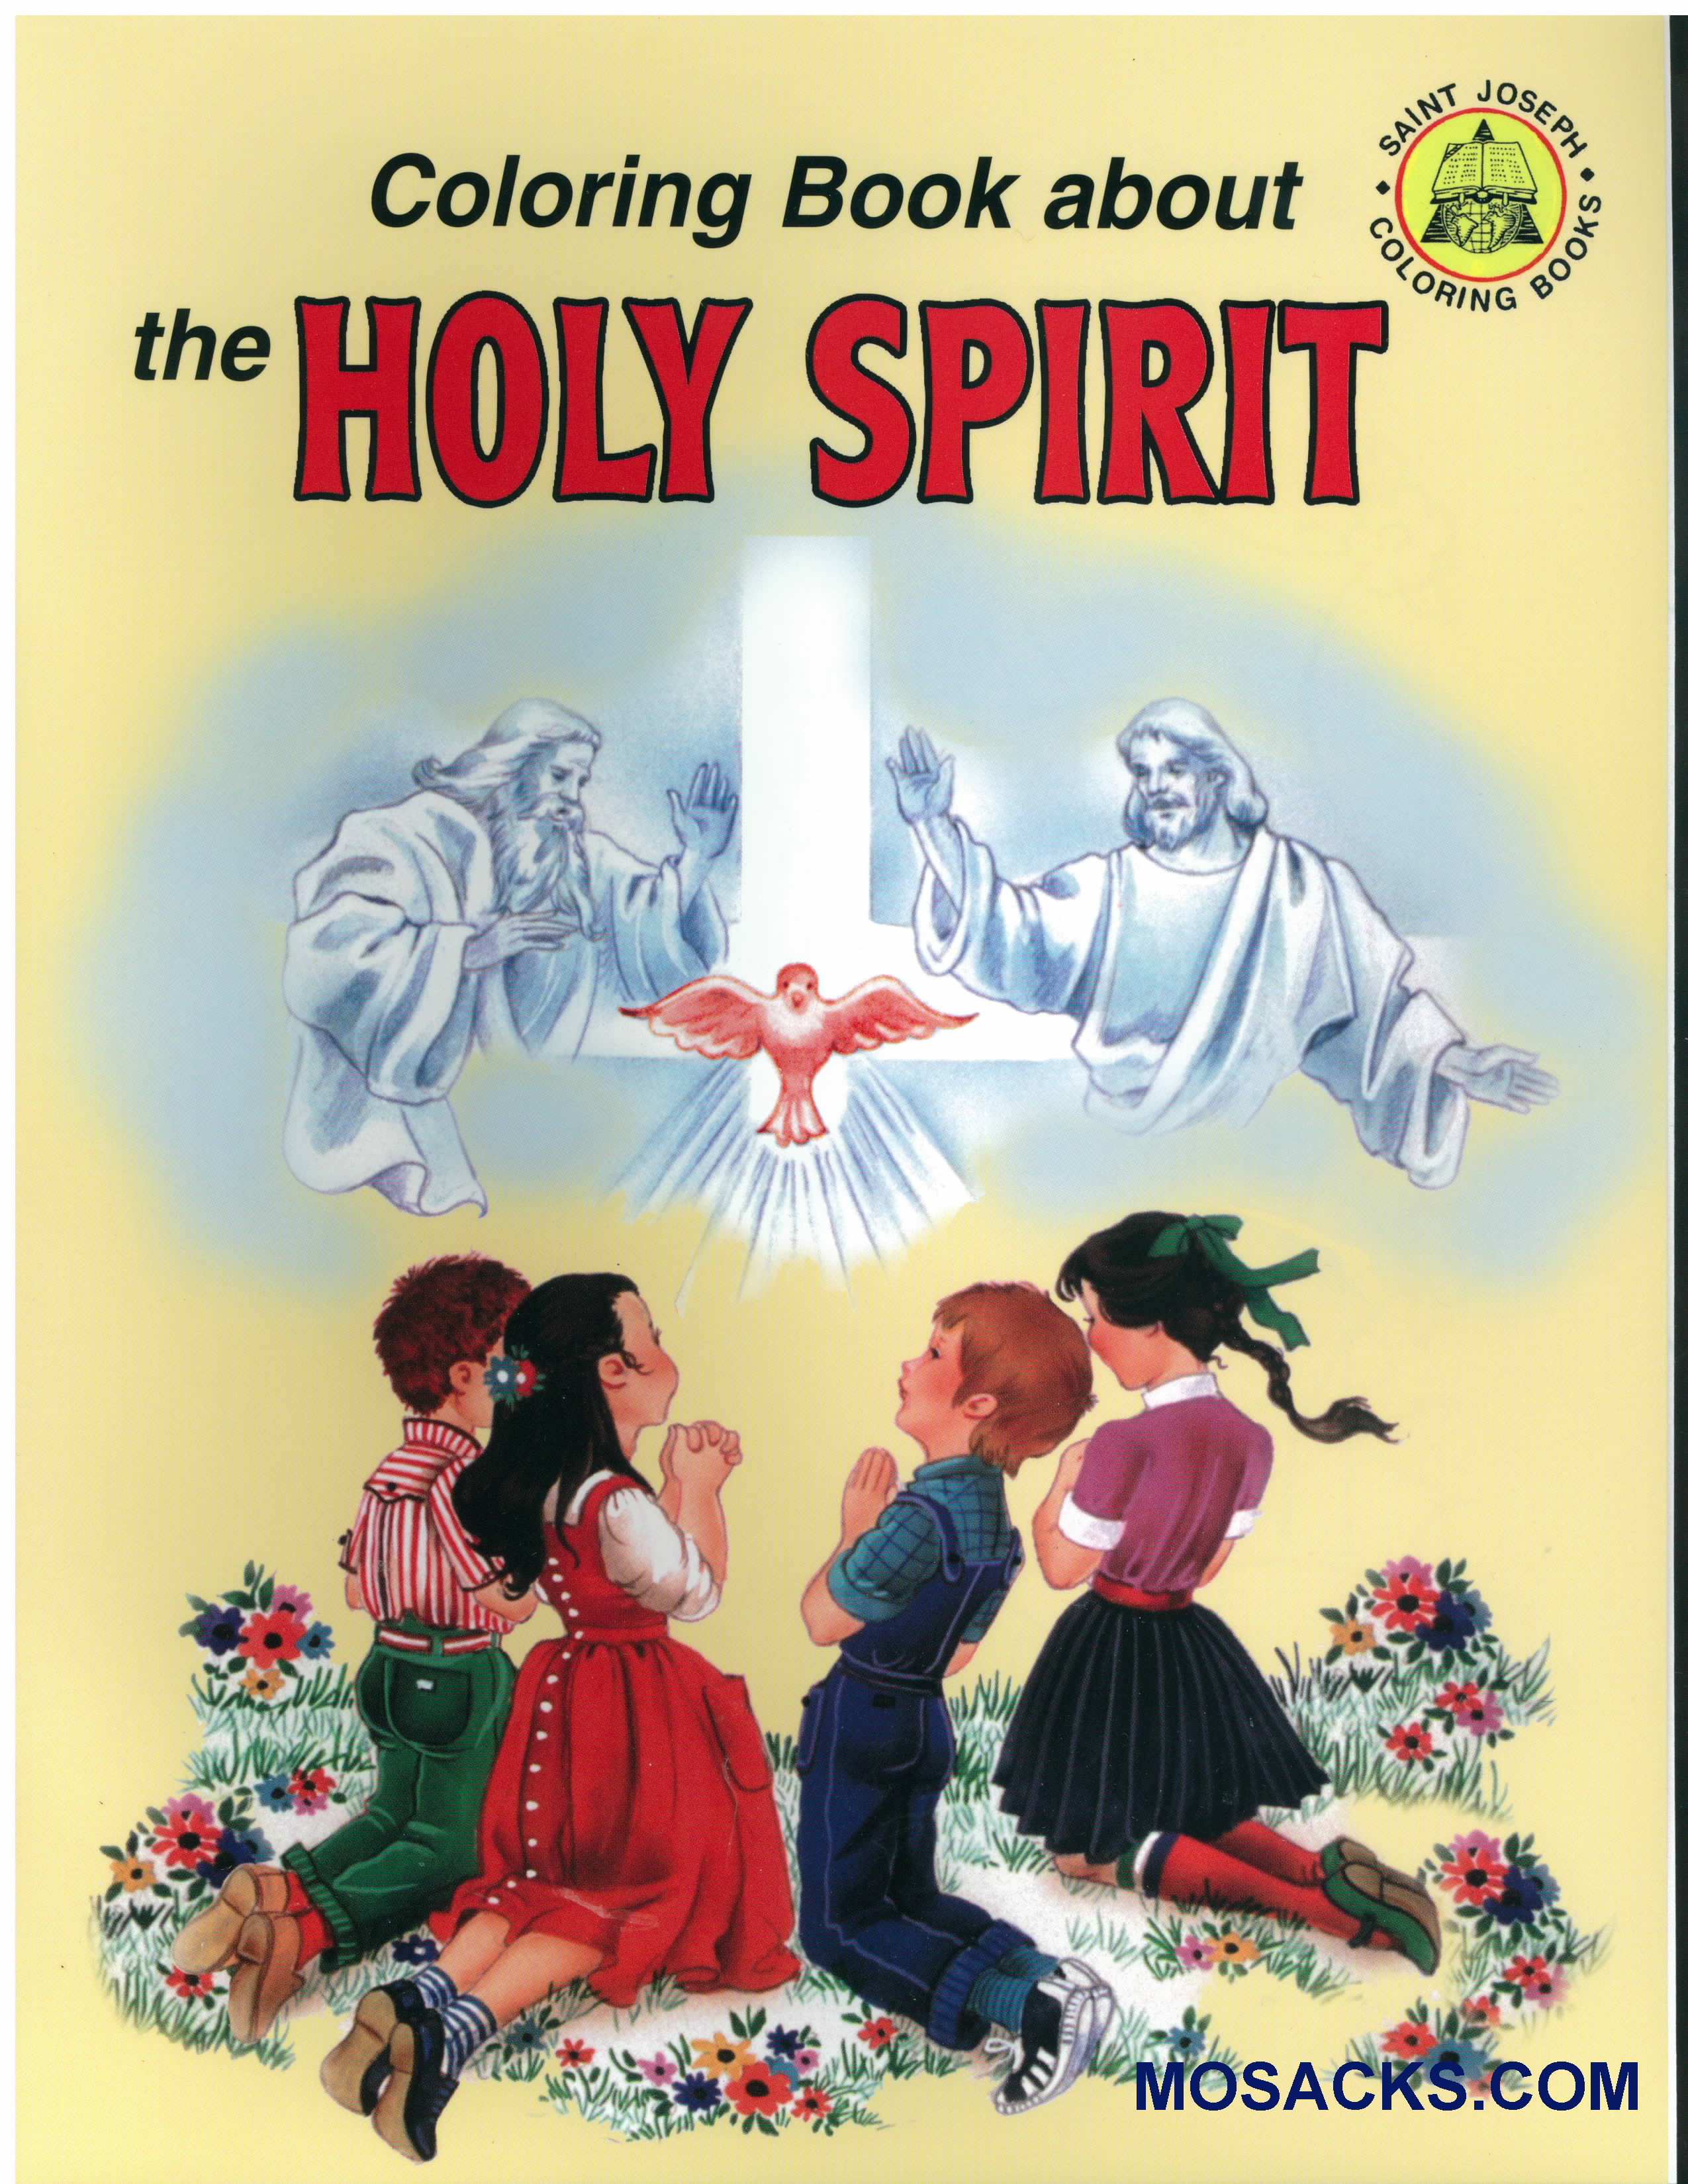 Coloring Book About Holy Spirit-978089942698-3